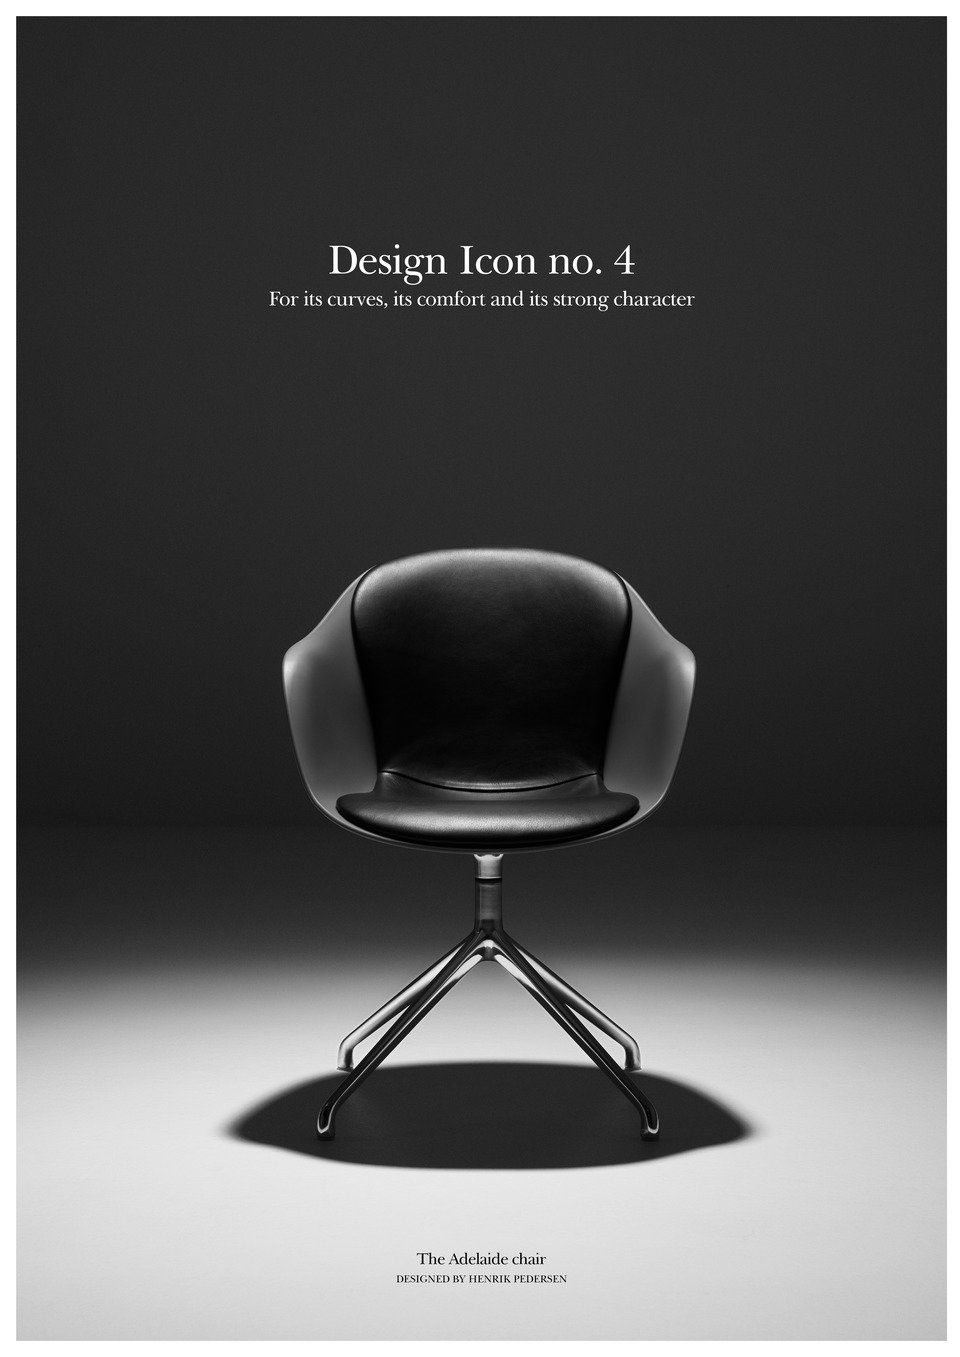 24745_Adelaide chair with swivel function_10002_13.jpg